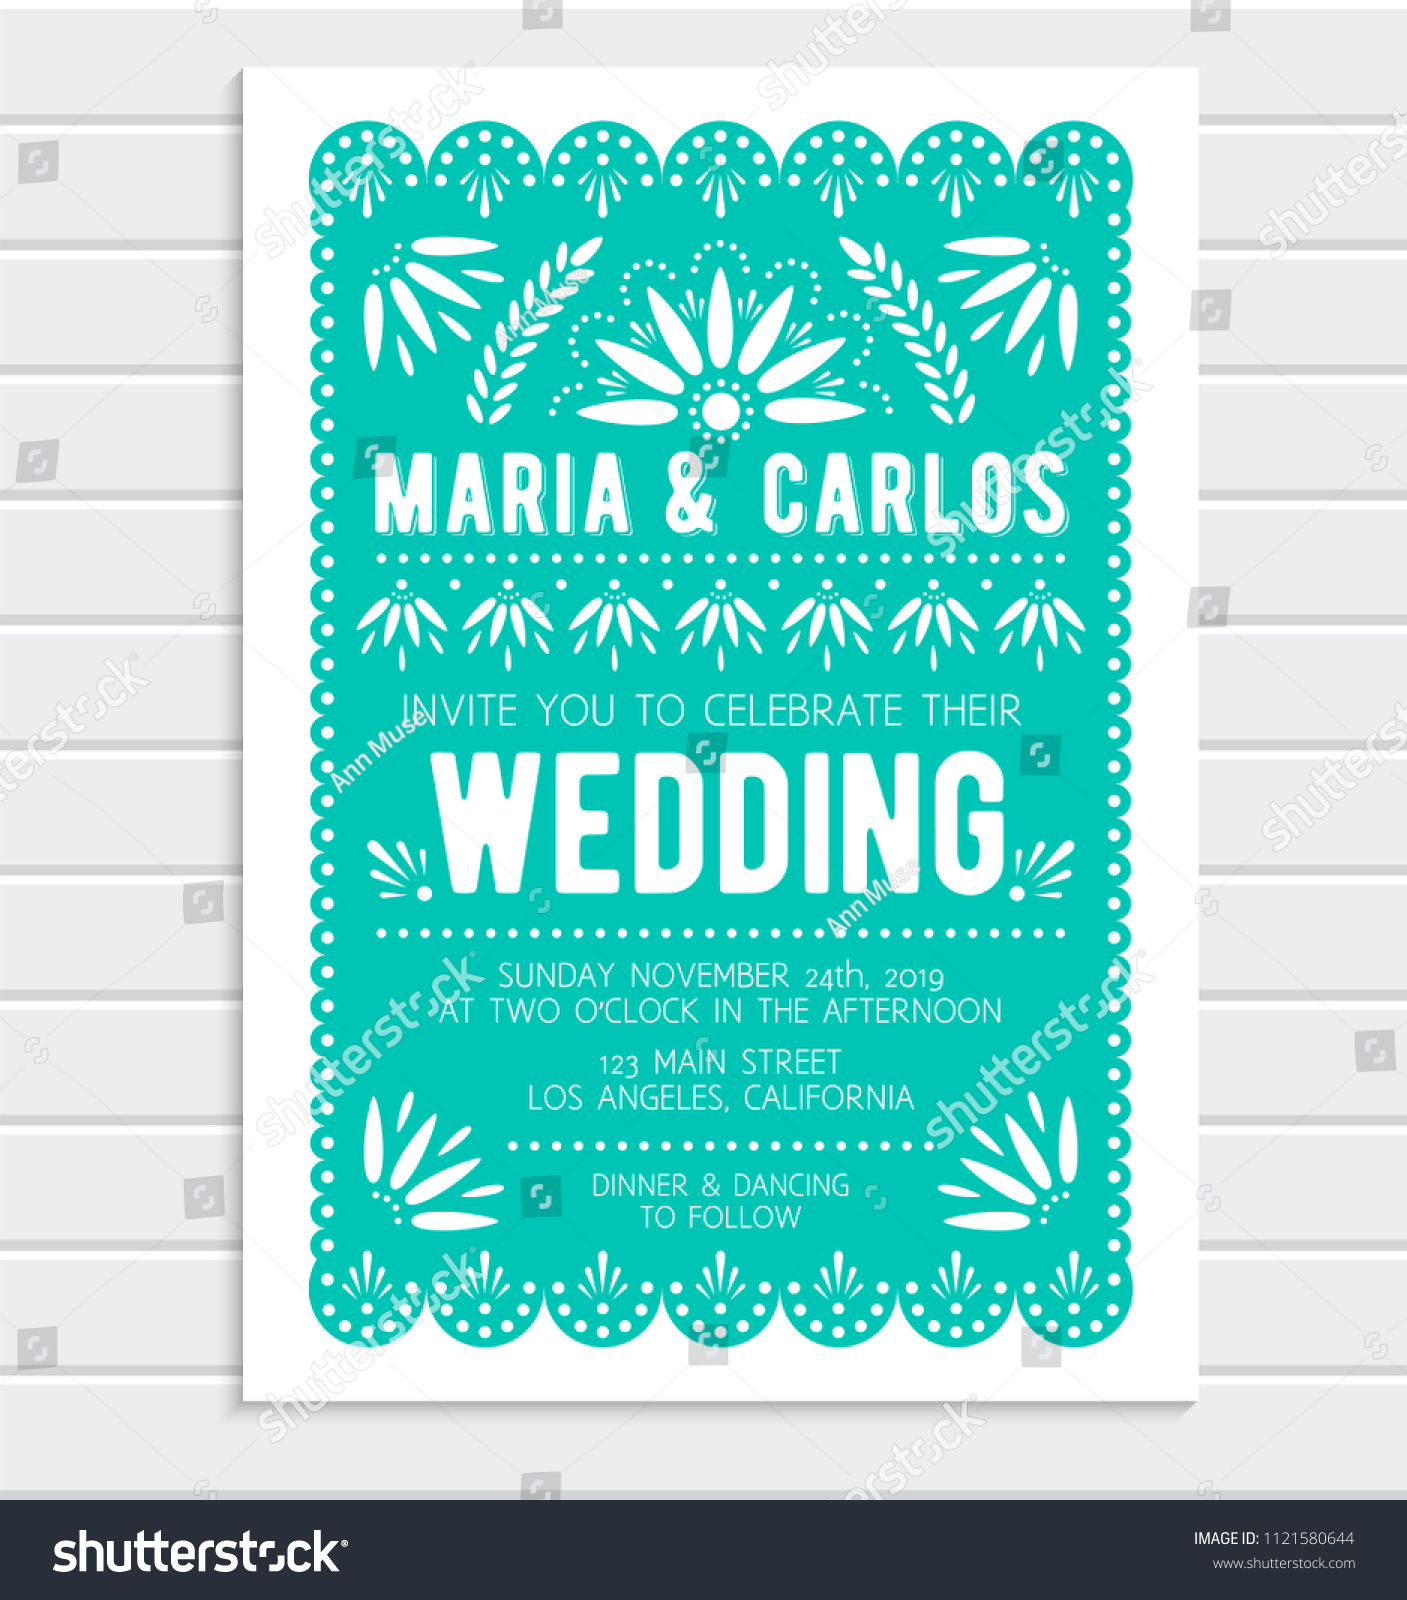 Vector Wedding Invitation Template Papel Picado Banner With Floral Pattern Mexican Paper Cut Style: Mexican Wedding Invitation Backgrounds At Reisefeber.org